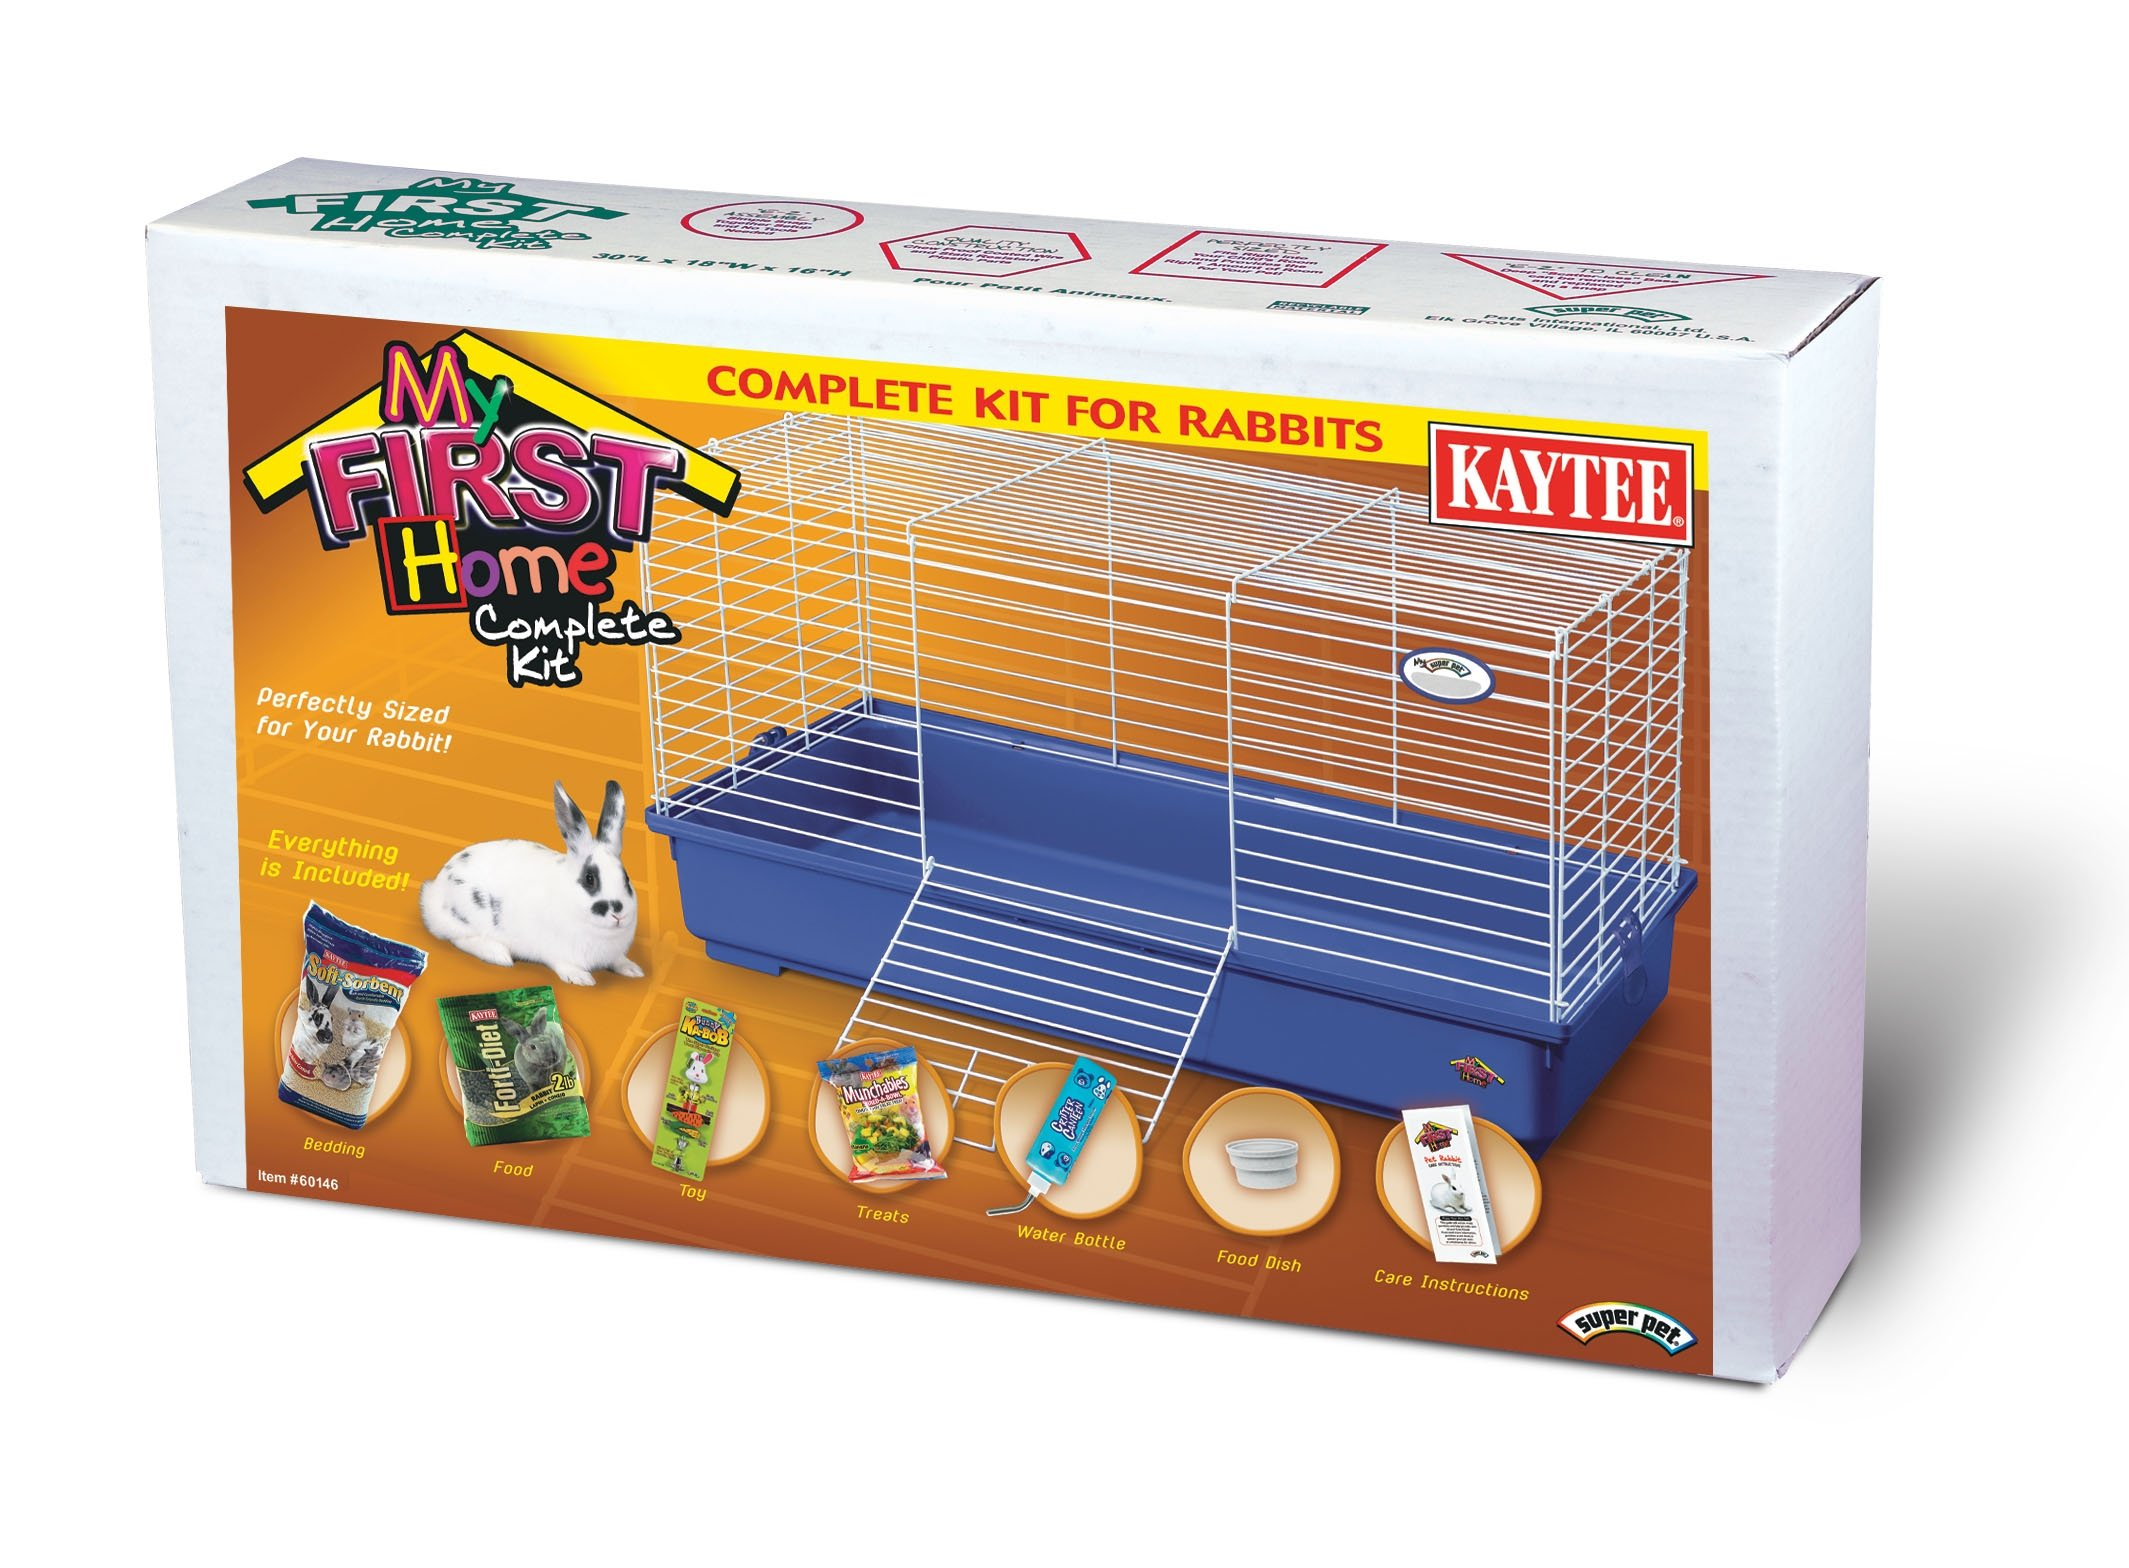 Super Pet My First Home Complete Rabbit Kit, Purple